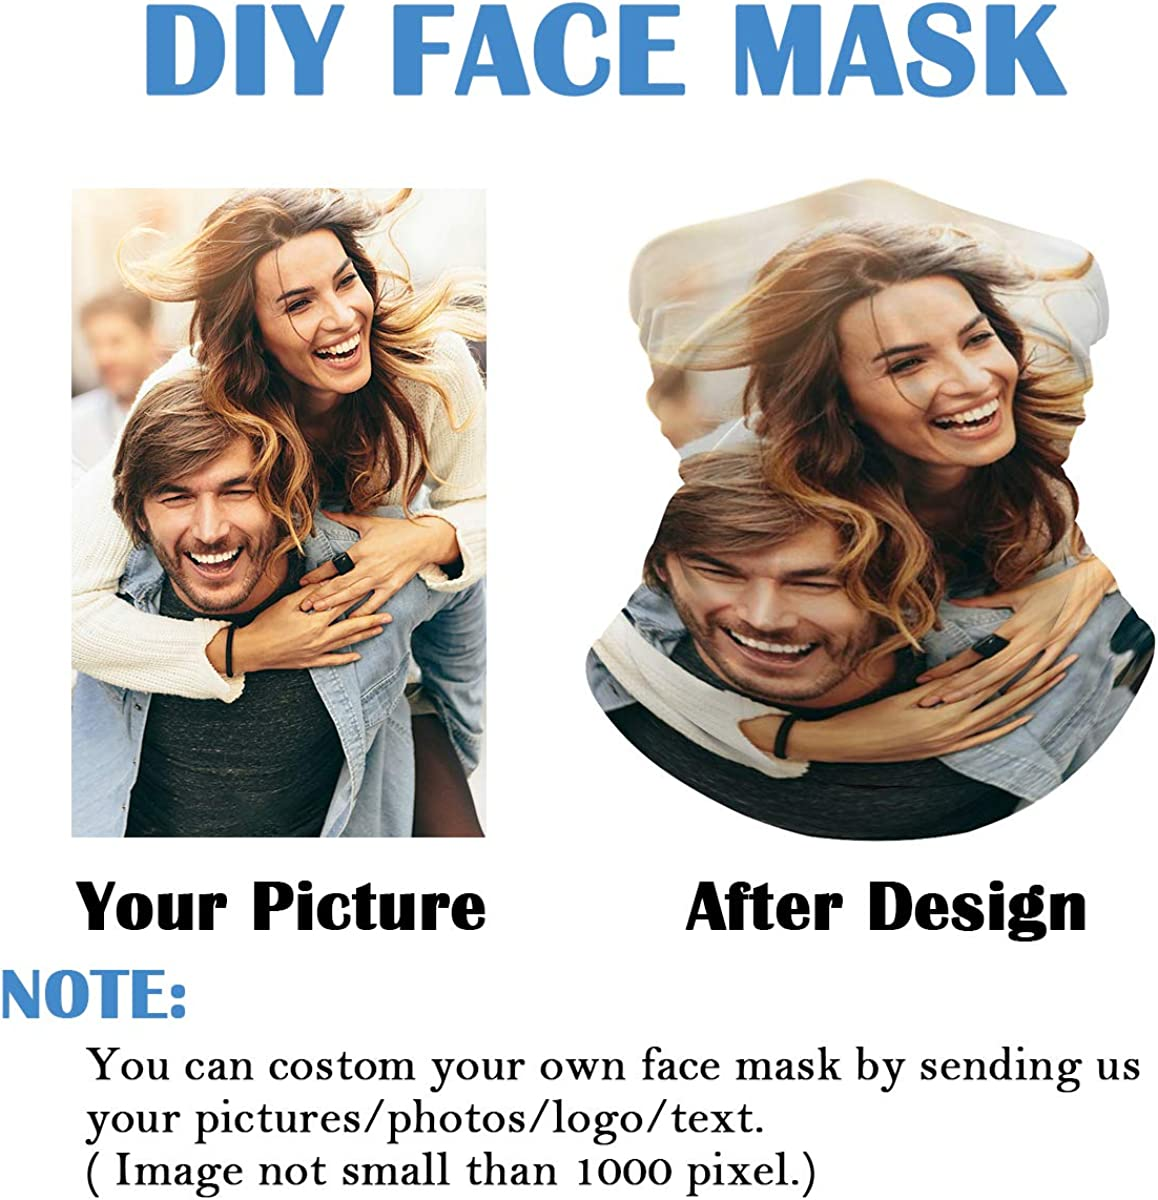 Custom Face Mask Reusable for Men & Women, Personalized Customized Neck Gaiter for Cycling, Fishing, Hiking, Outdoors